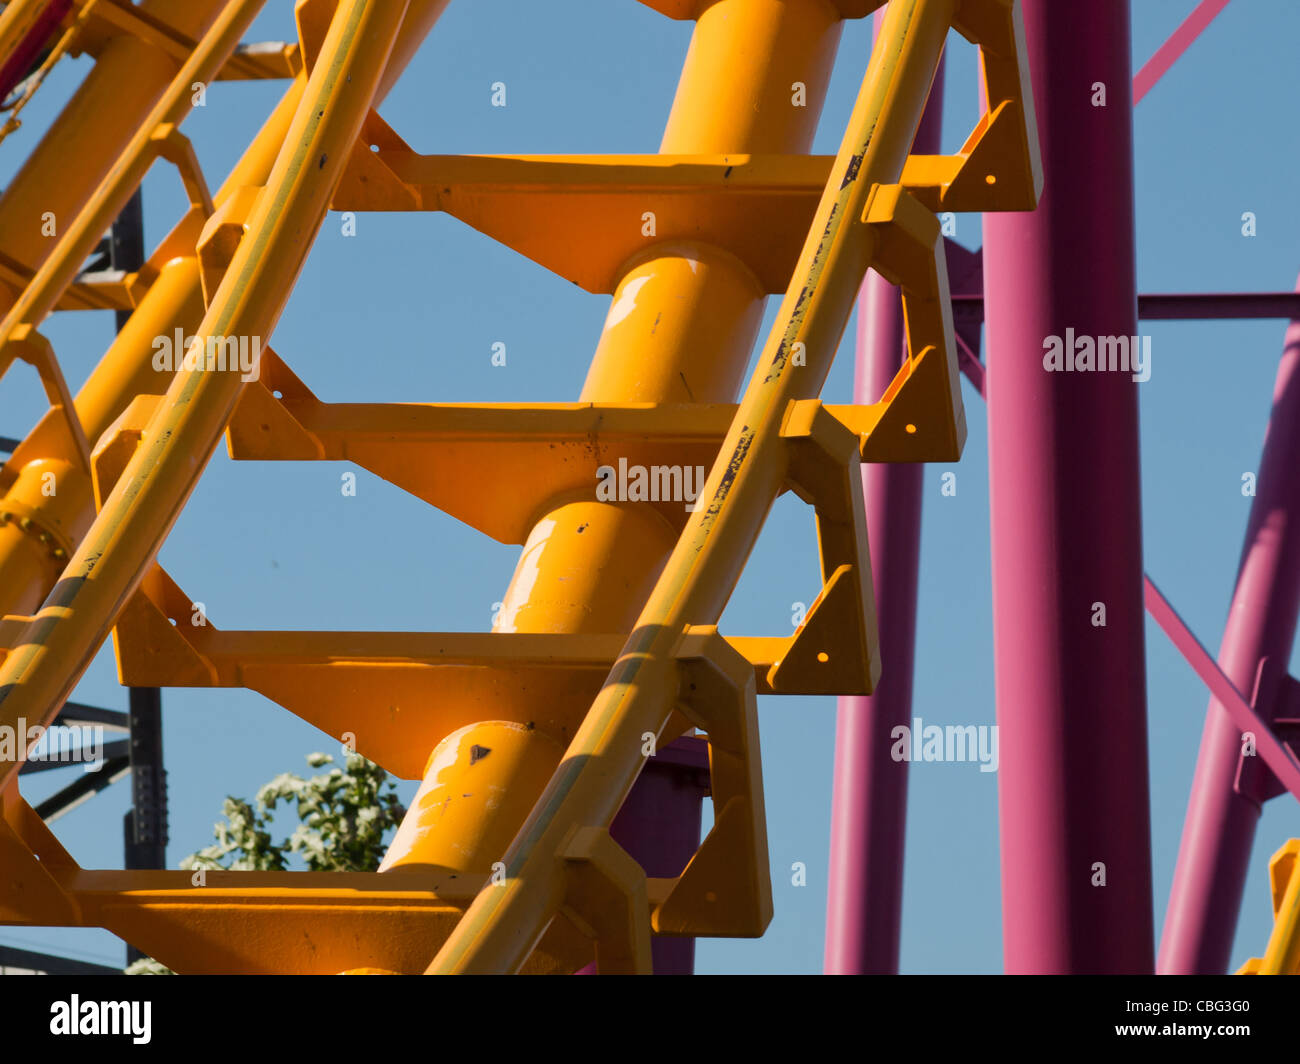 Six Flags Elitch Gardens Stock Photos & Six Flags Elitch Gardens ...